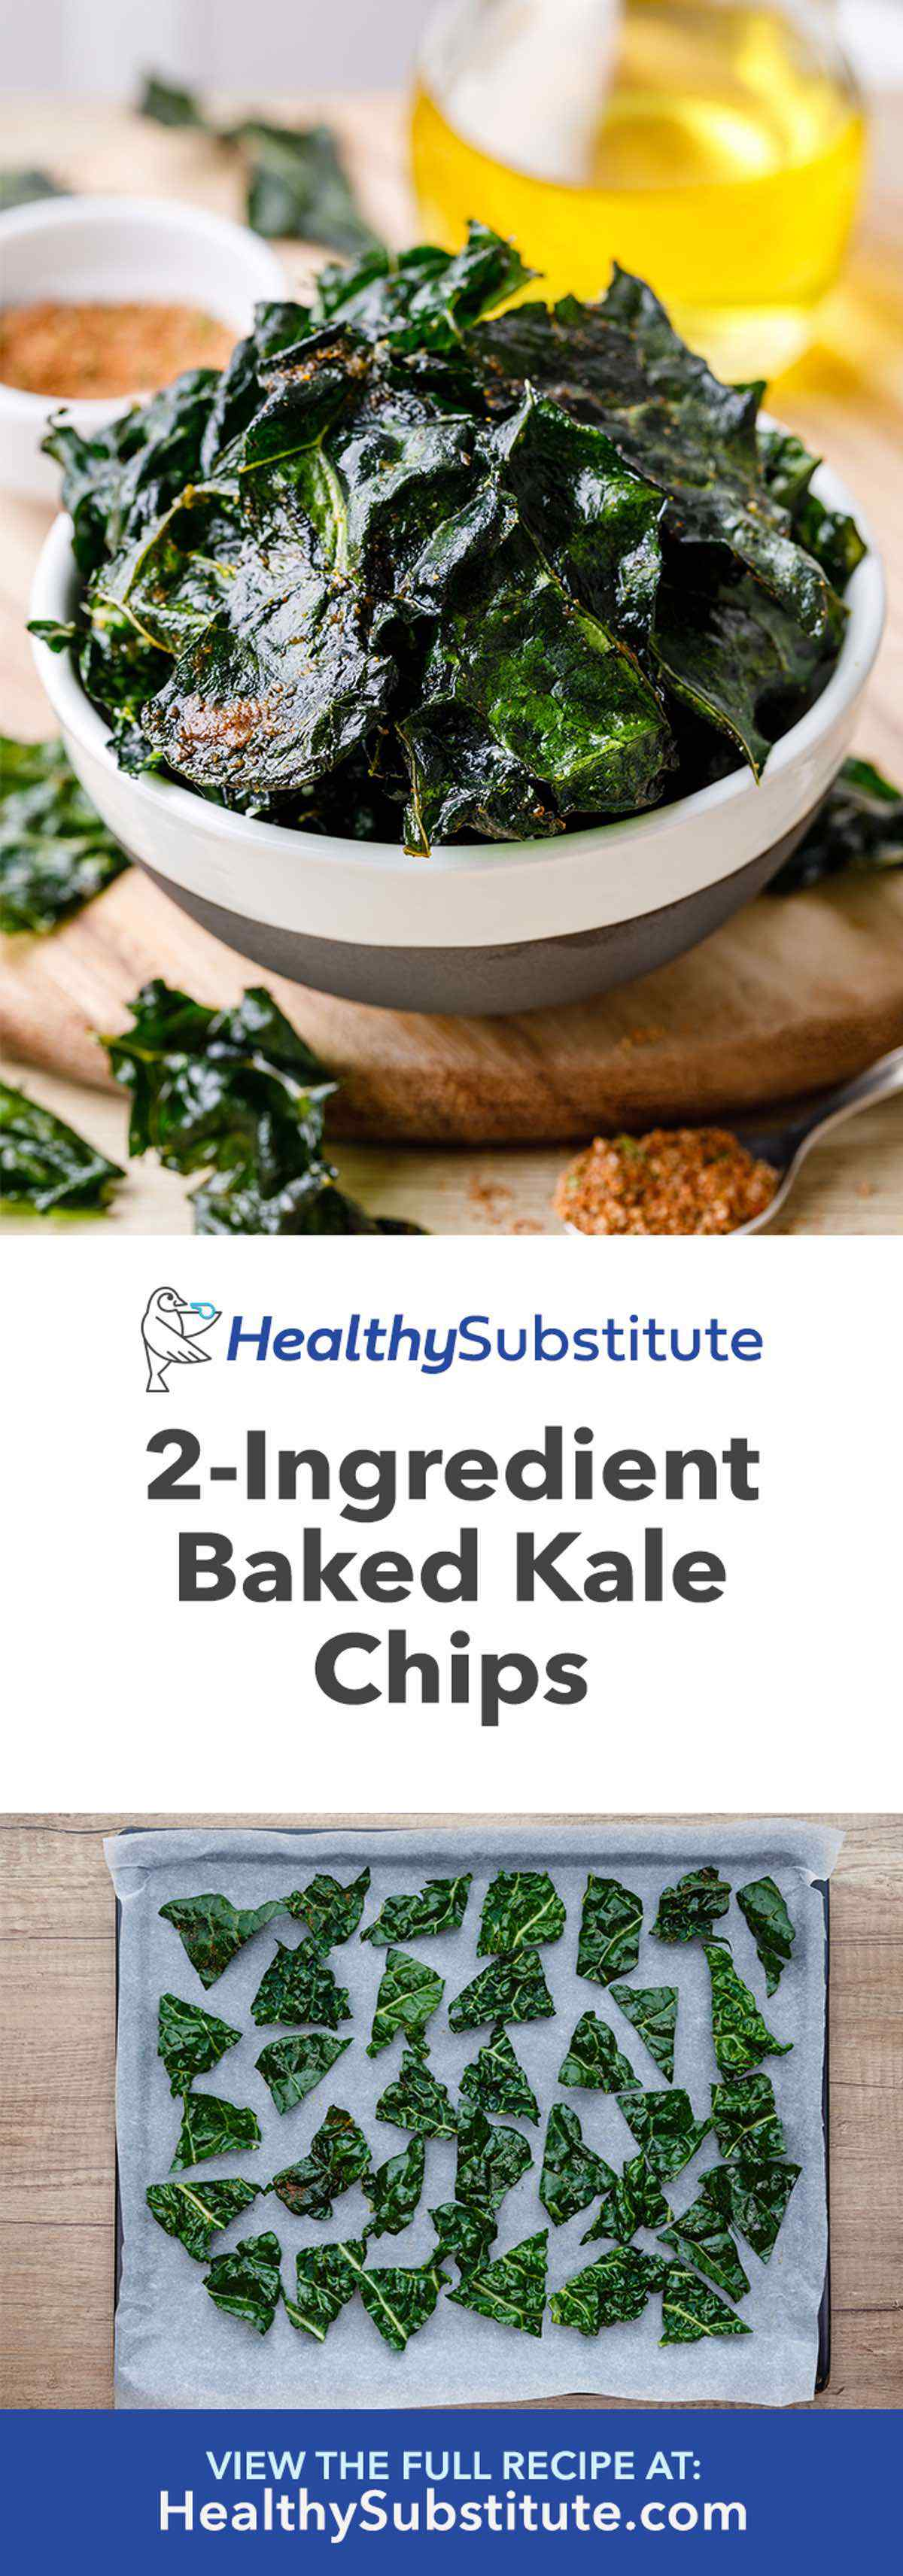 How to Make 2-Ingredient Baked Kale Chips at Home